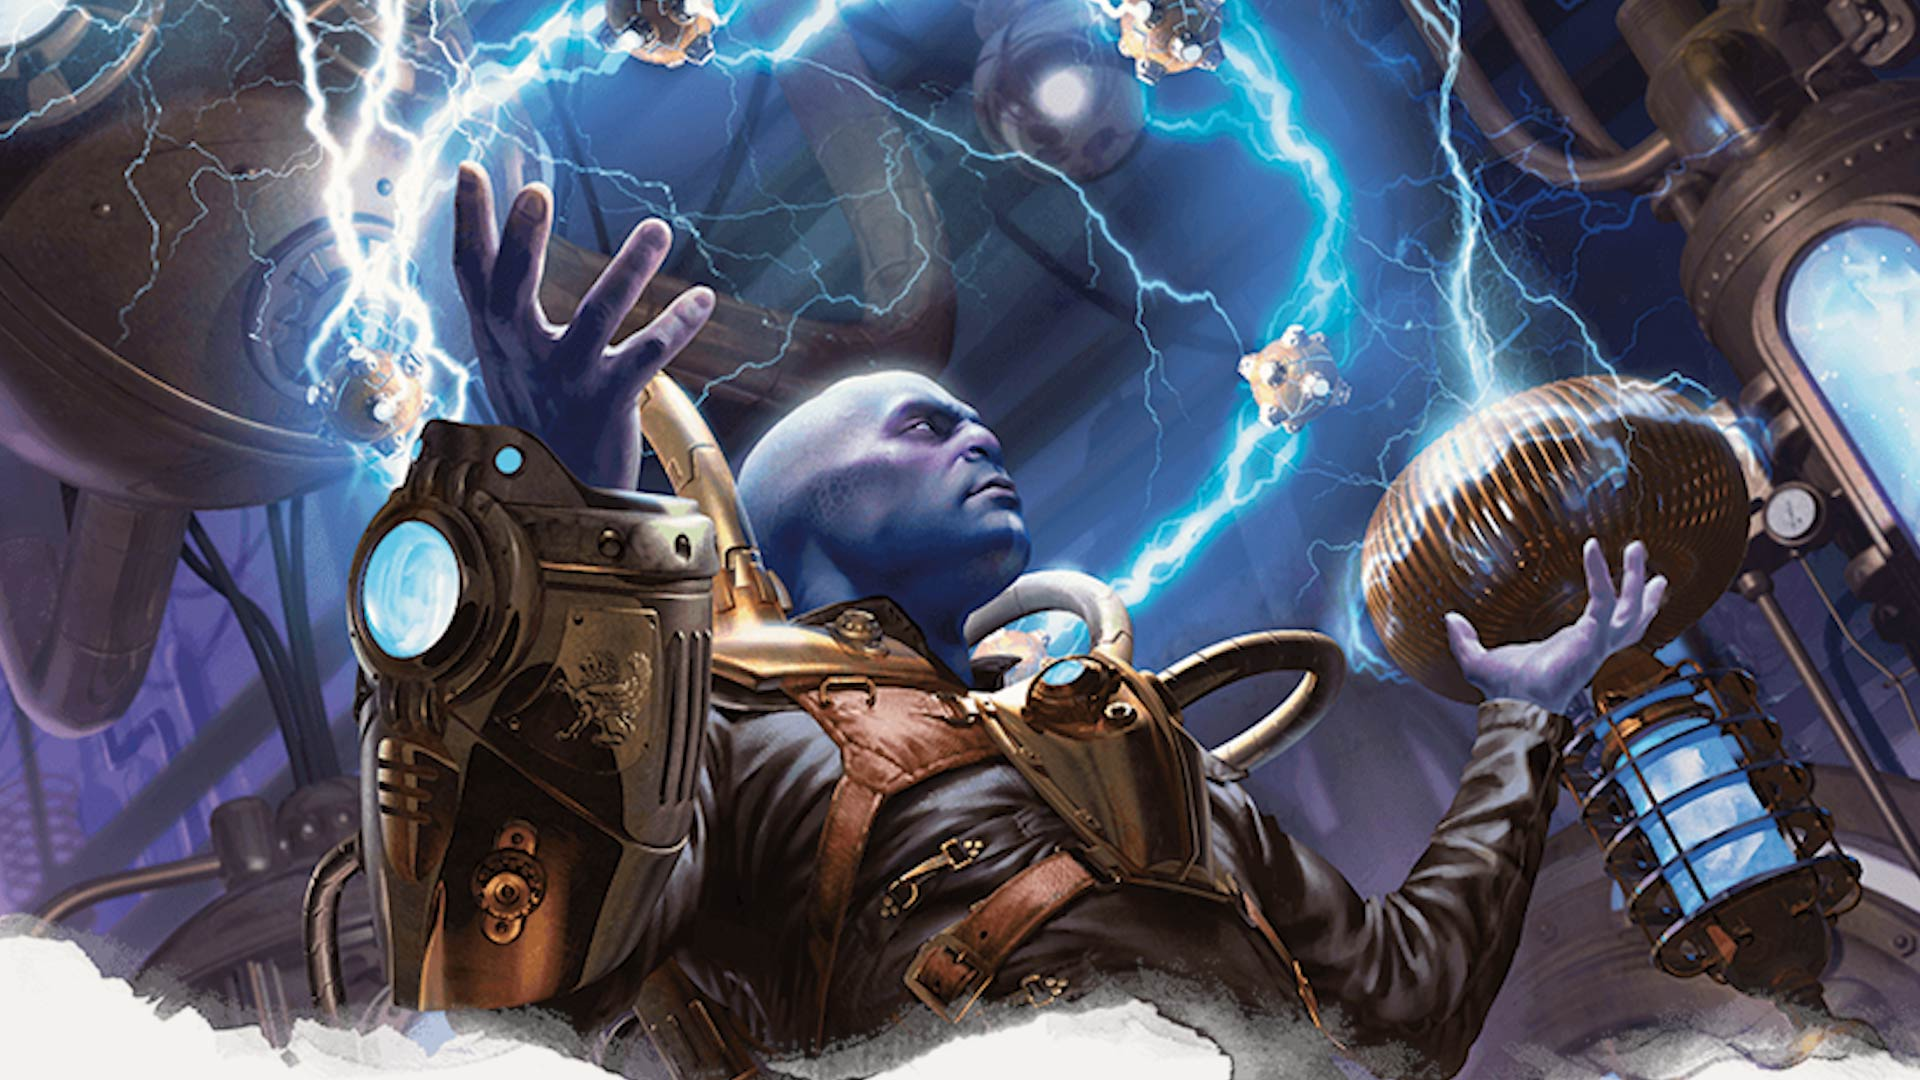 Izzet League in 'Guildmaster's Guide to Ravnica' - Posts - D&D Beyond